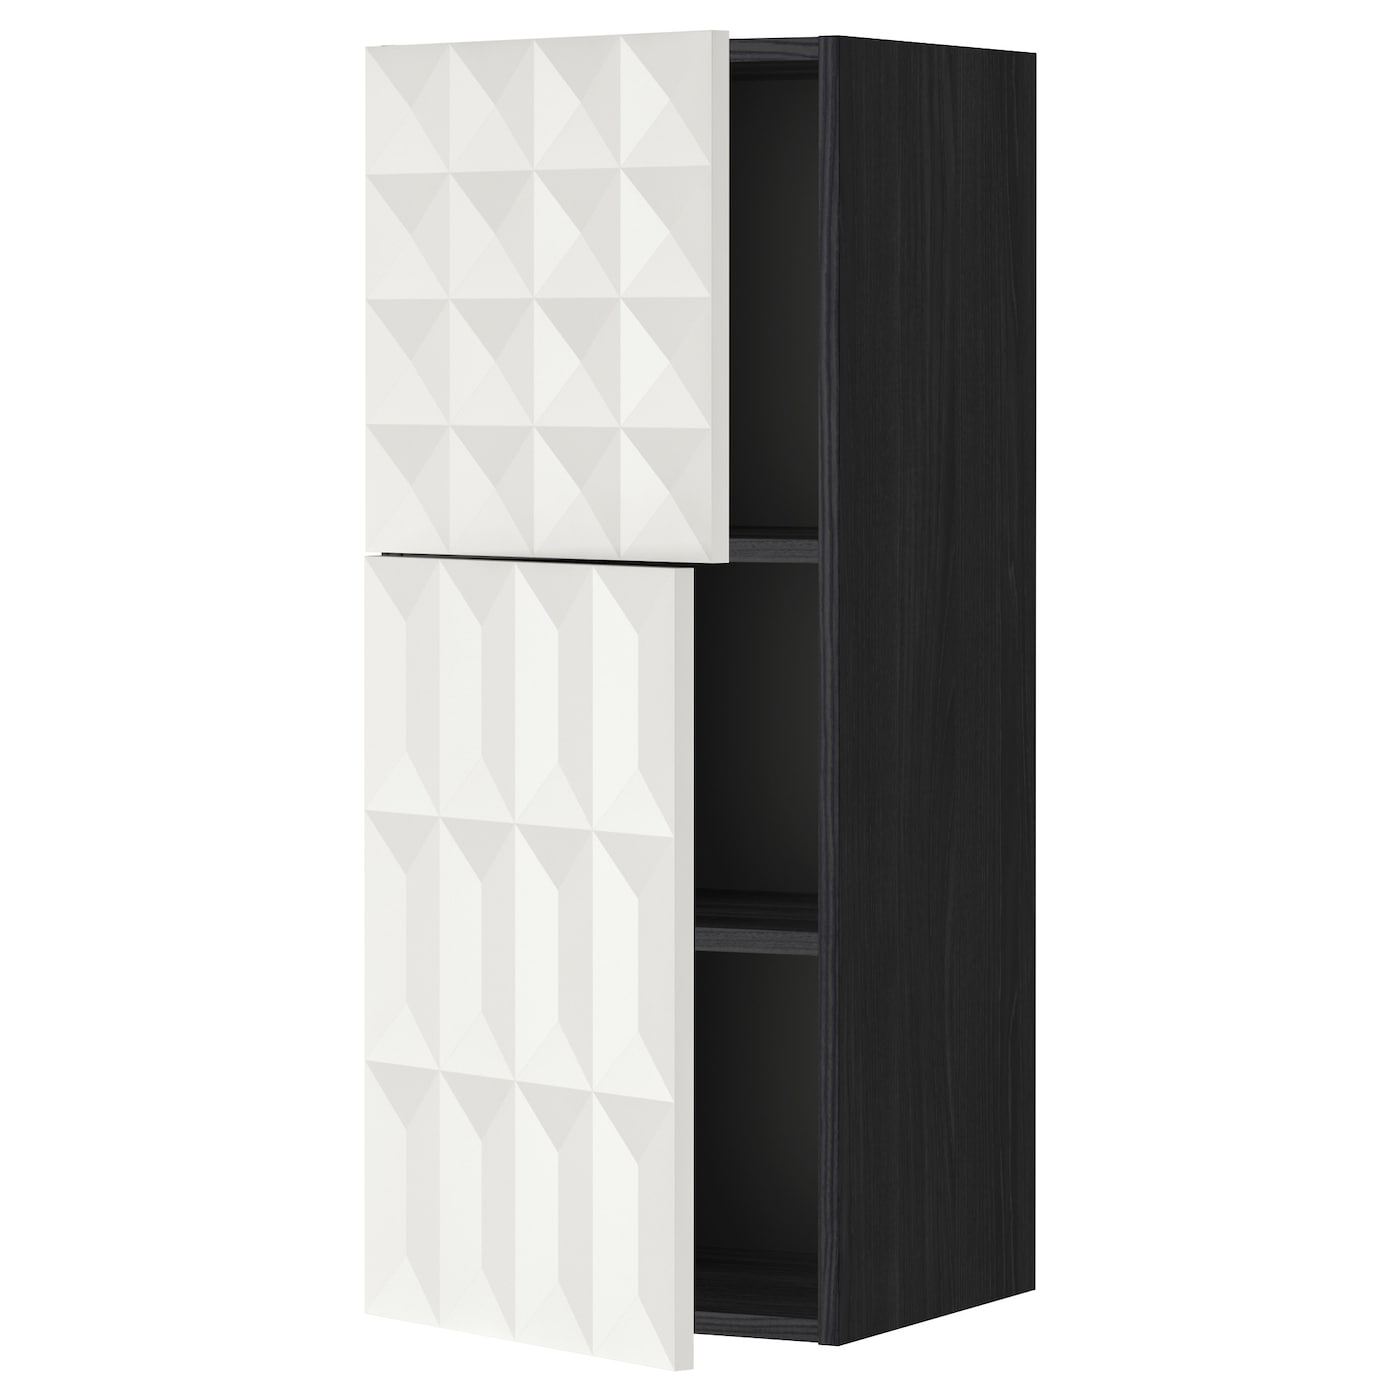 IKEA METOD wall cabinet with shelves/2 doors Sturdy frame construction, 18 mm thick.